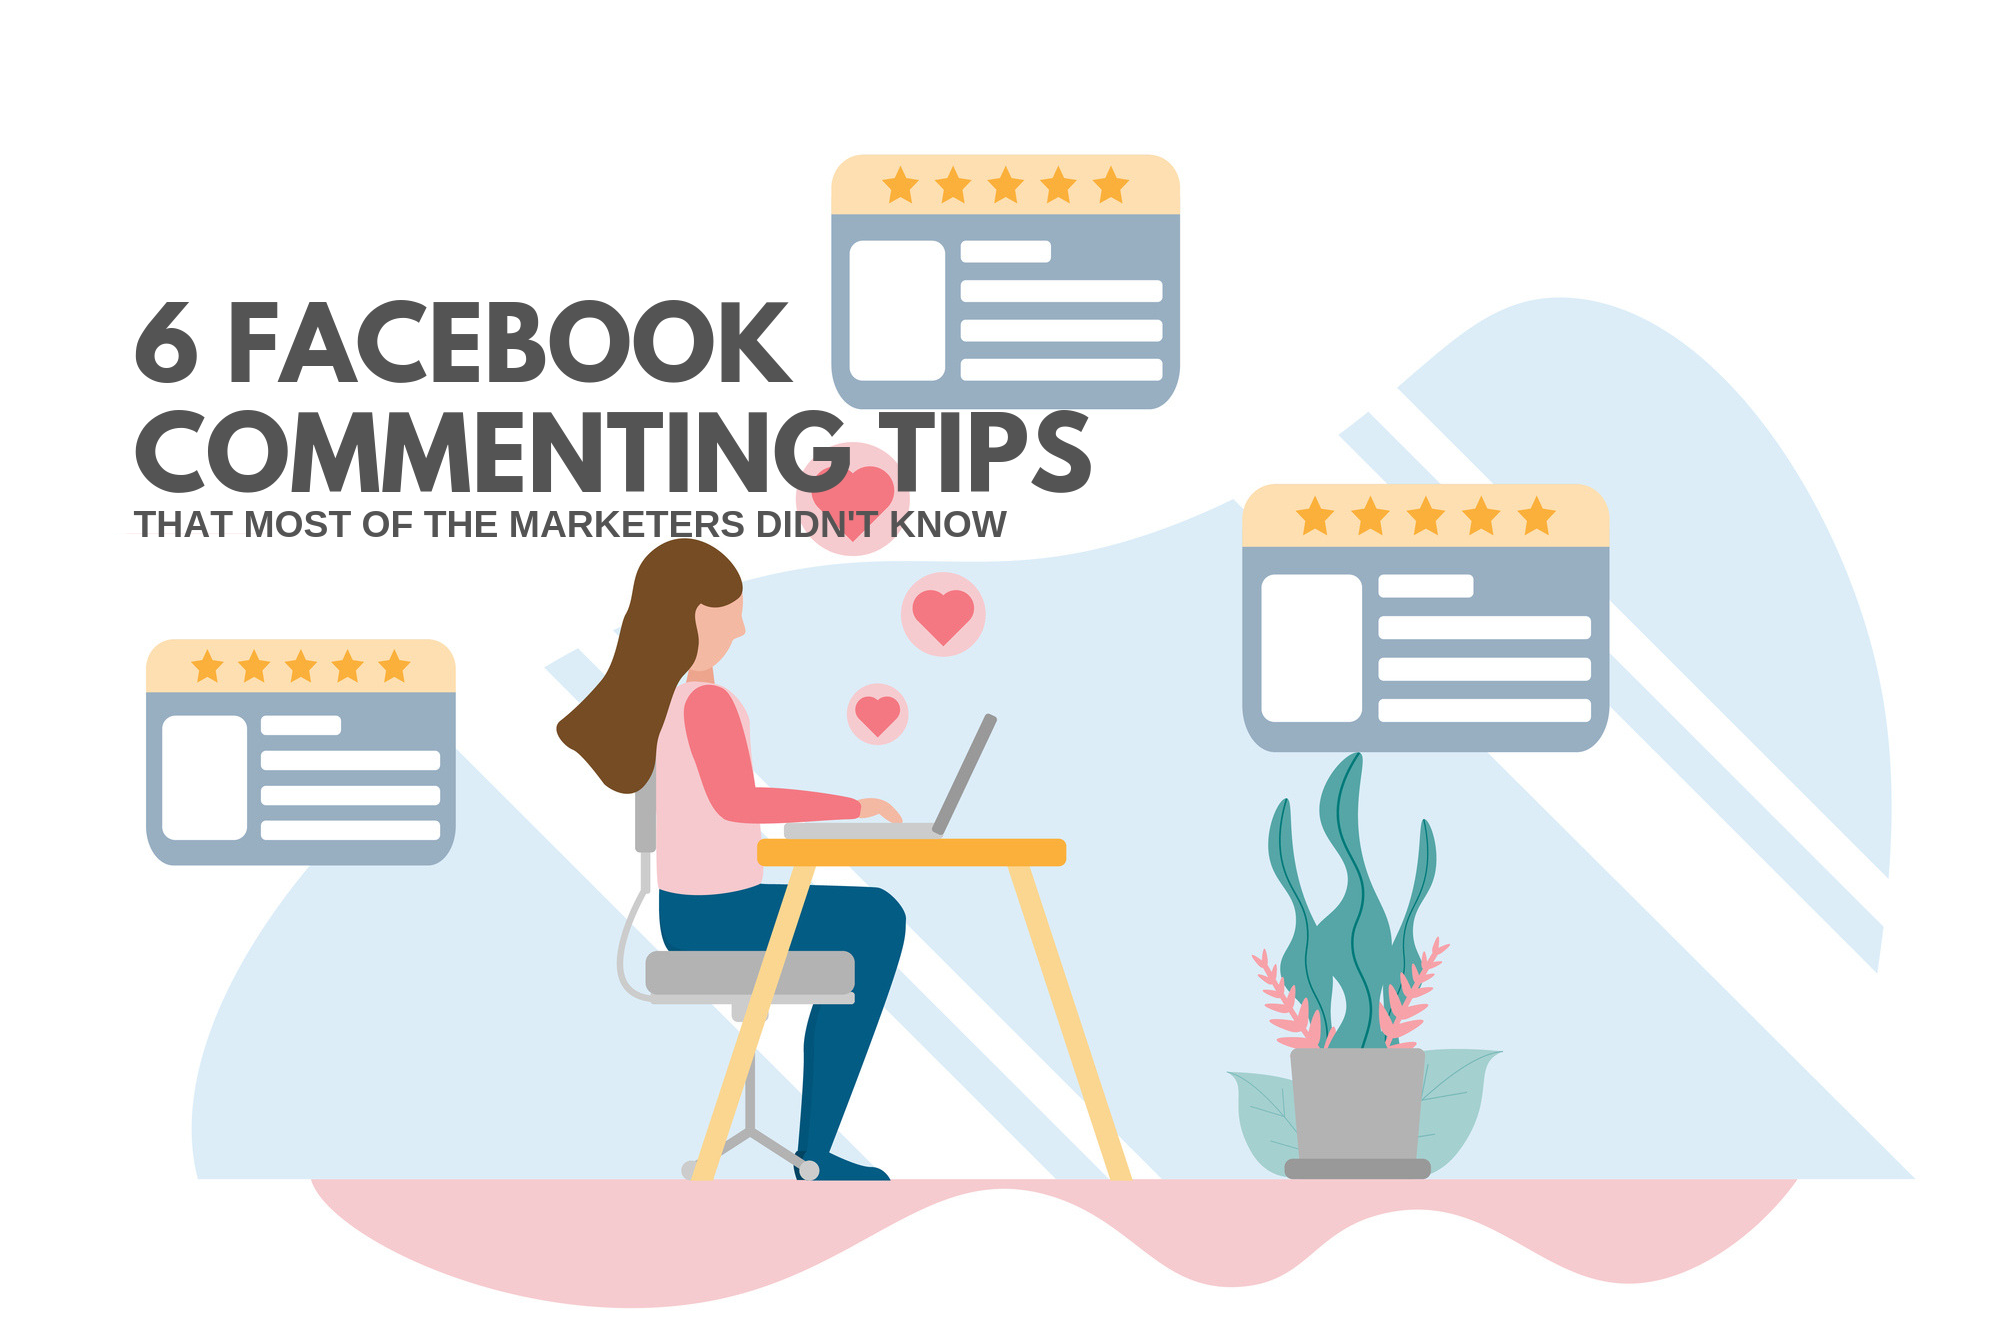 6 Facebook Commenting Tips That Most Marketers Didn't Know